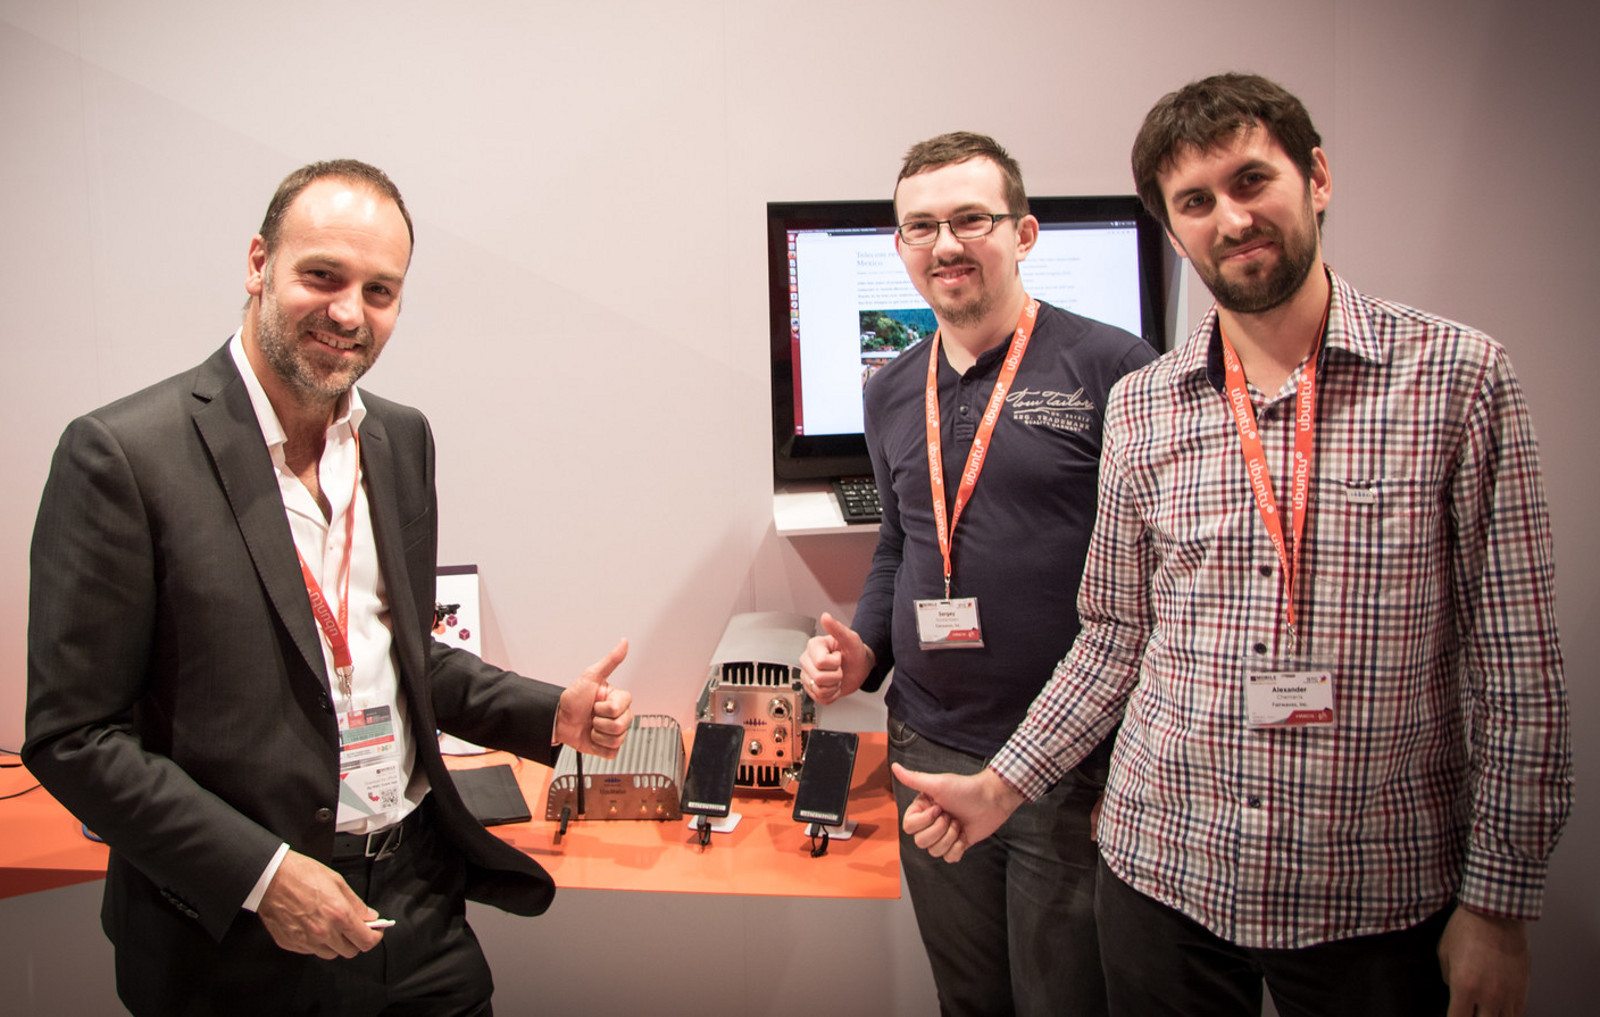 The Ubuntu and Fairwaves demo gets the thumbs-up from Mark Shuttleworth and Alexander Chemeris at Mobile World Congress 2015